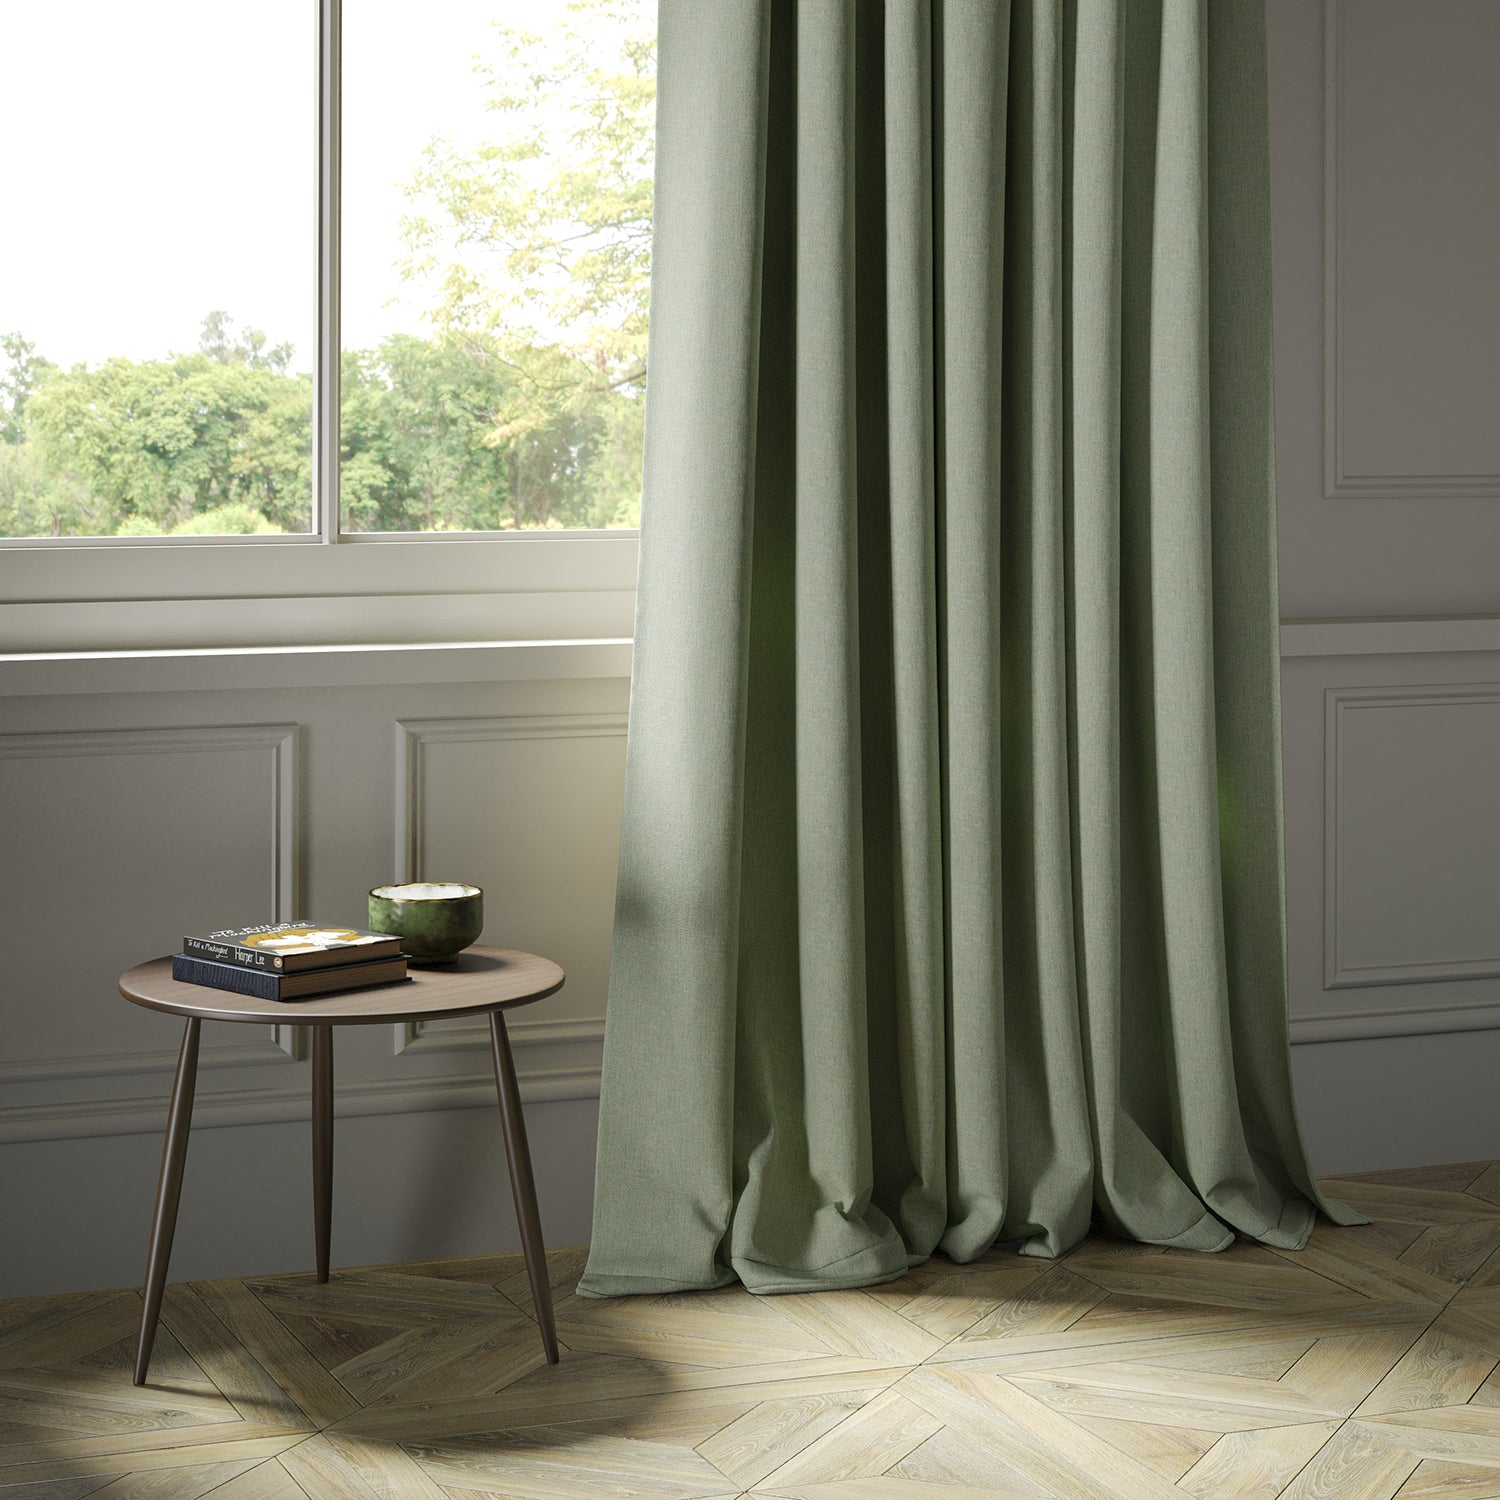 Curtains in a light green Scottish wool herringbone fabric